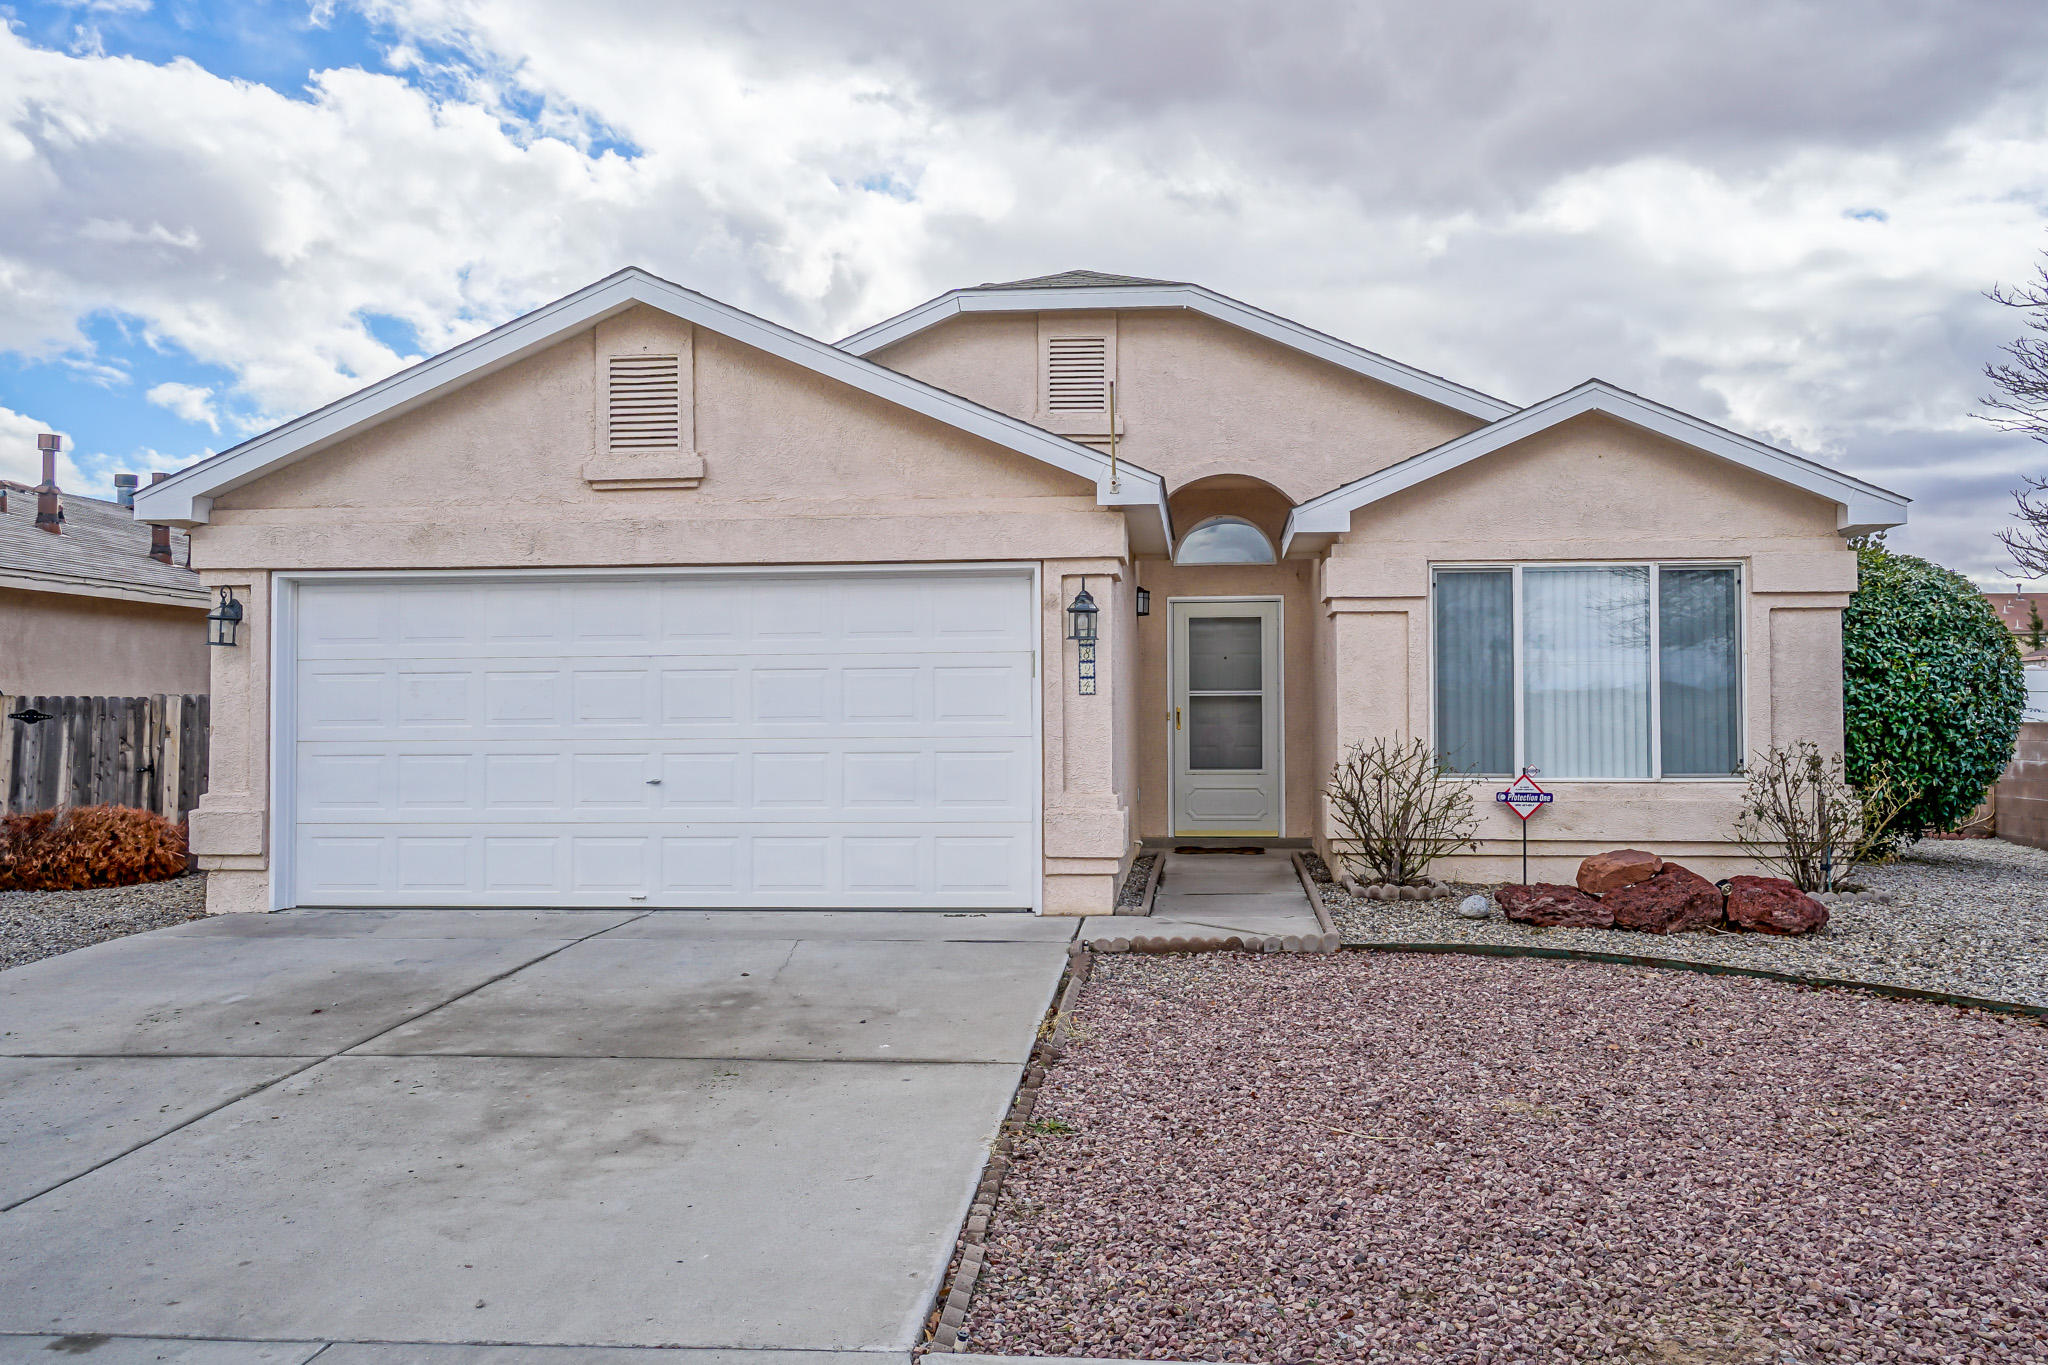 Northwest Albuquerque and Northwest Heights Homes for Sale -  Single Story,  5824 NW Gemini Avenue